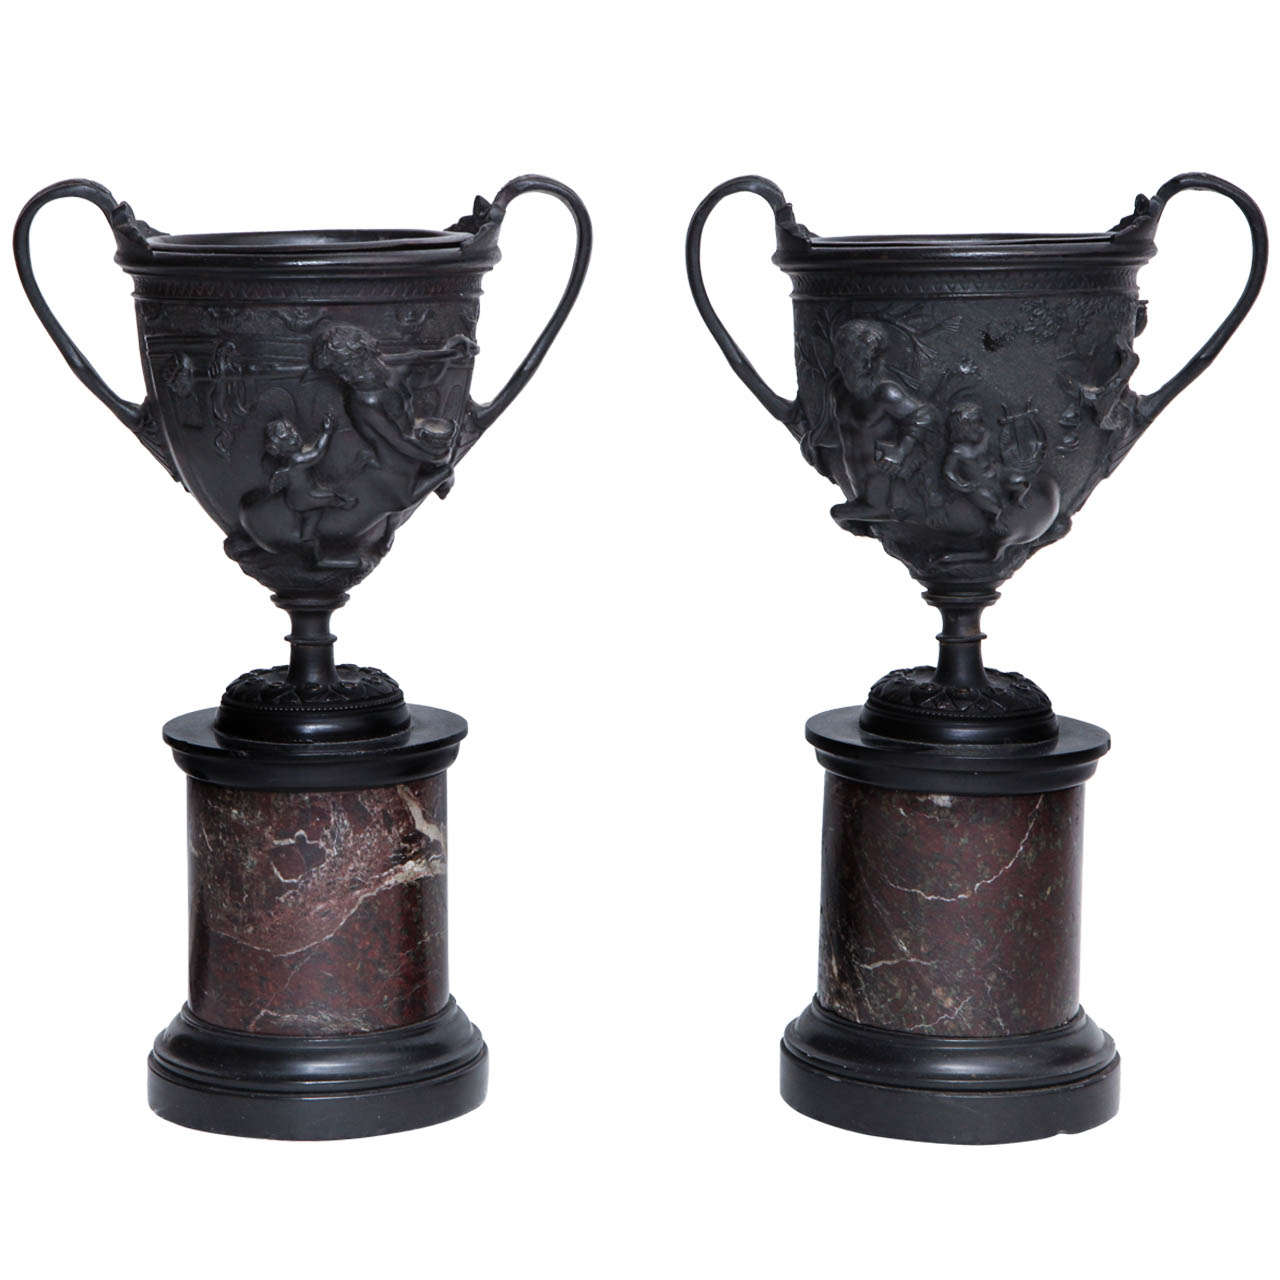 Pair of 19th Century French Bronze Urns